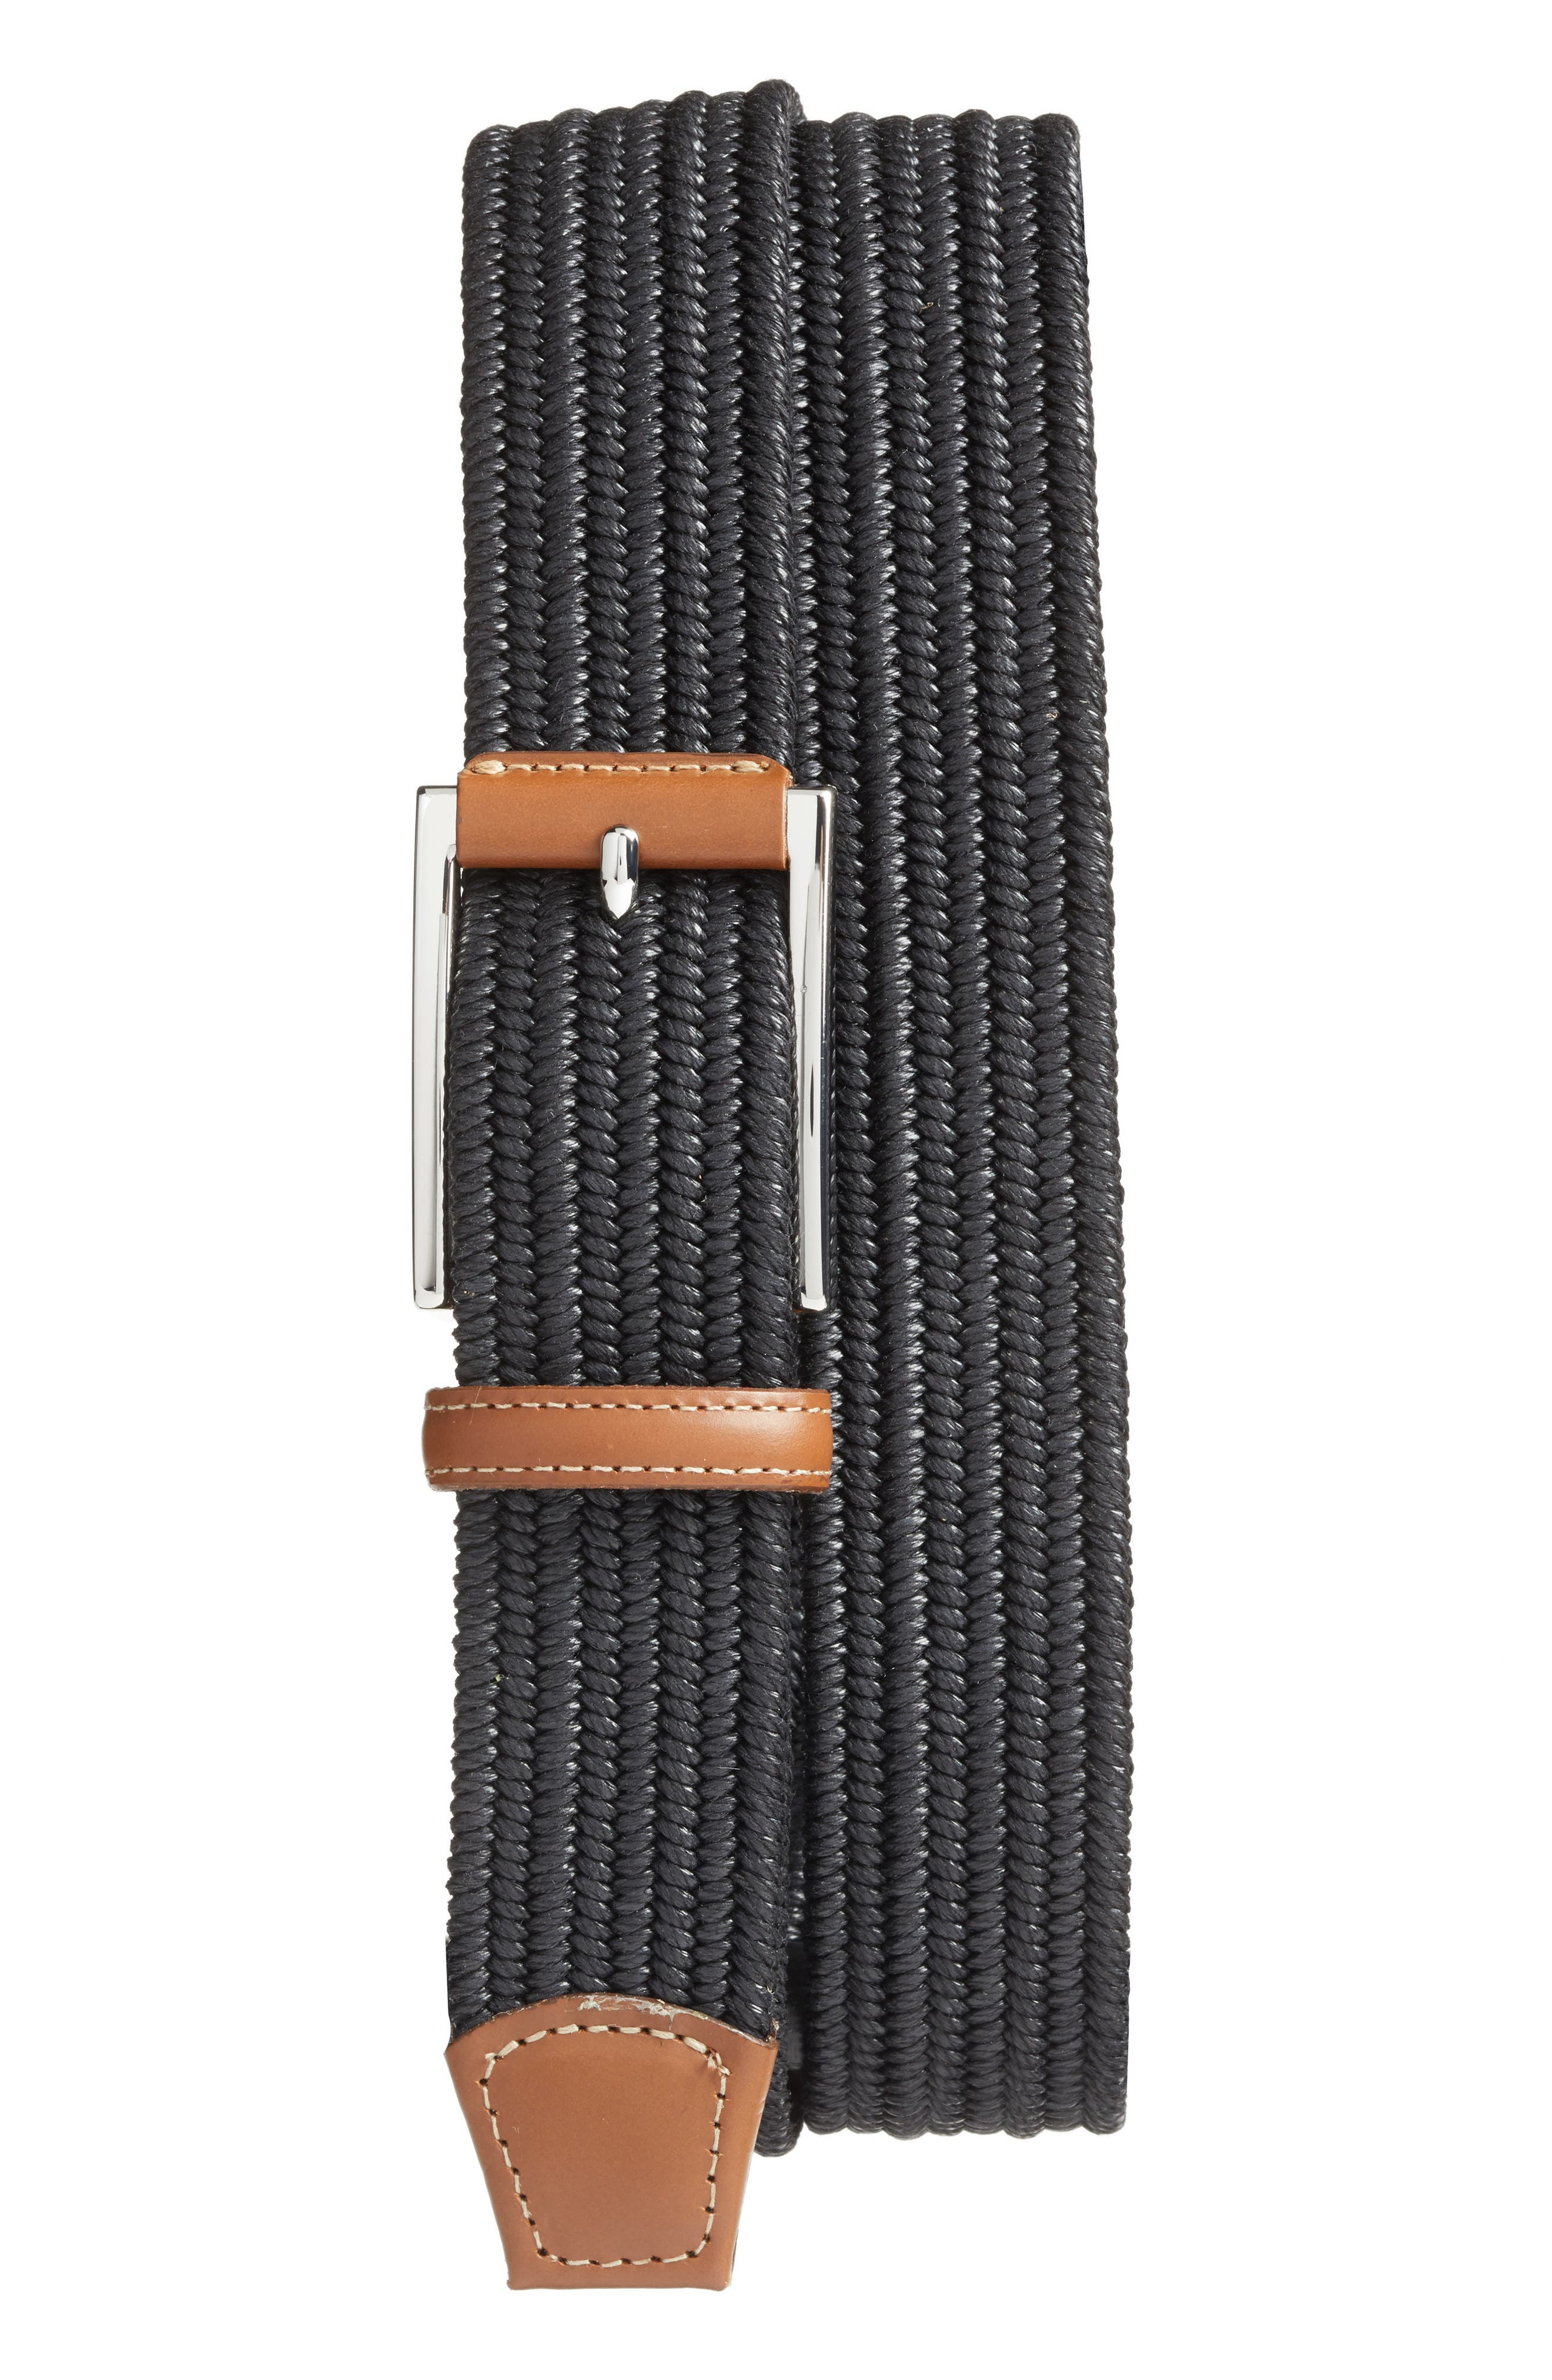 Touches of calfskin leather elevate a charming belt crafted in America from a stretchy Italian cotton blend. Style Name: Torino Woven Belt. Style Number: 5365705. Available in stores.